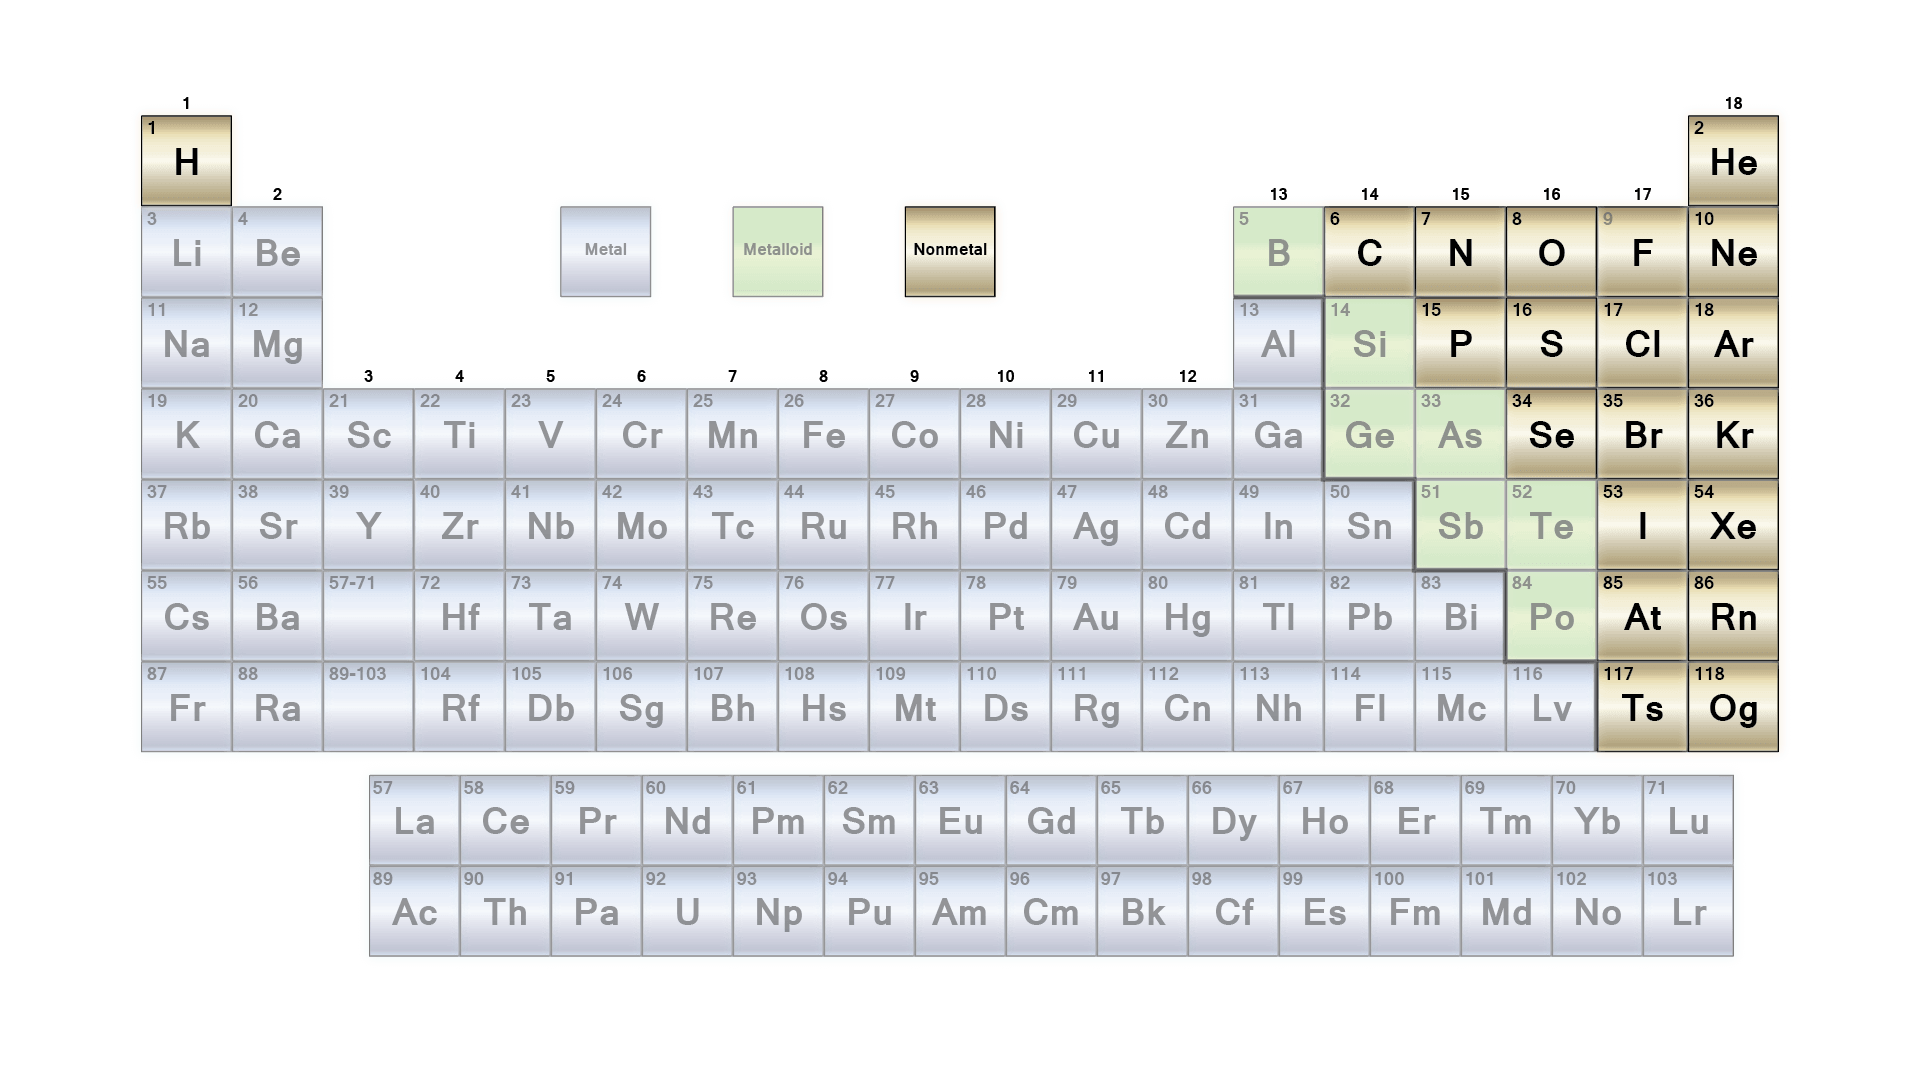 List Of Non Metals With Symbols And Their Uses In Periodic